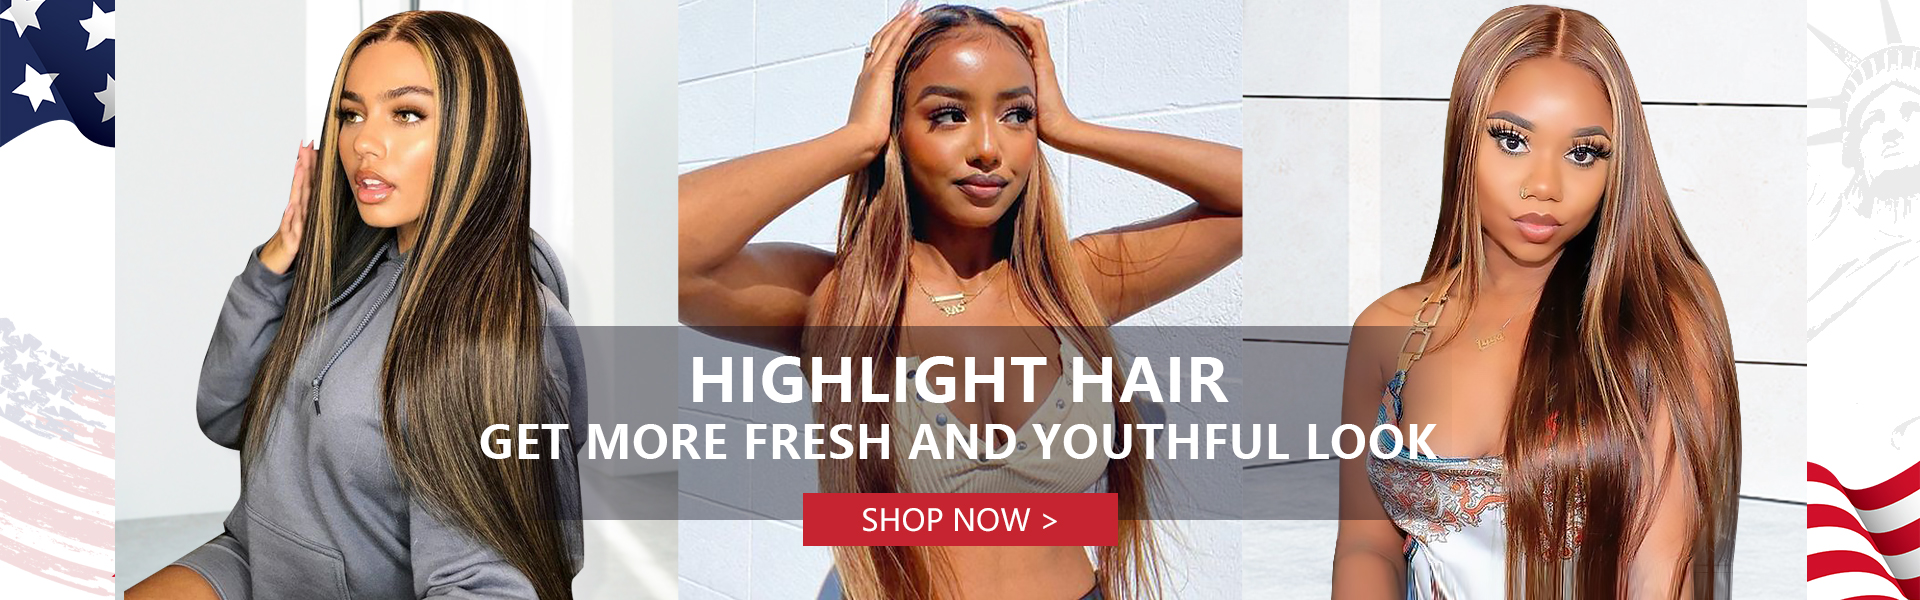 https://www.todayonlyhair.com/highlight_hair_list.html